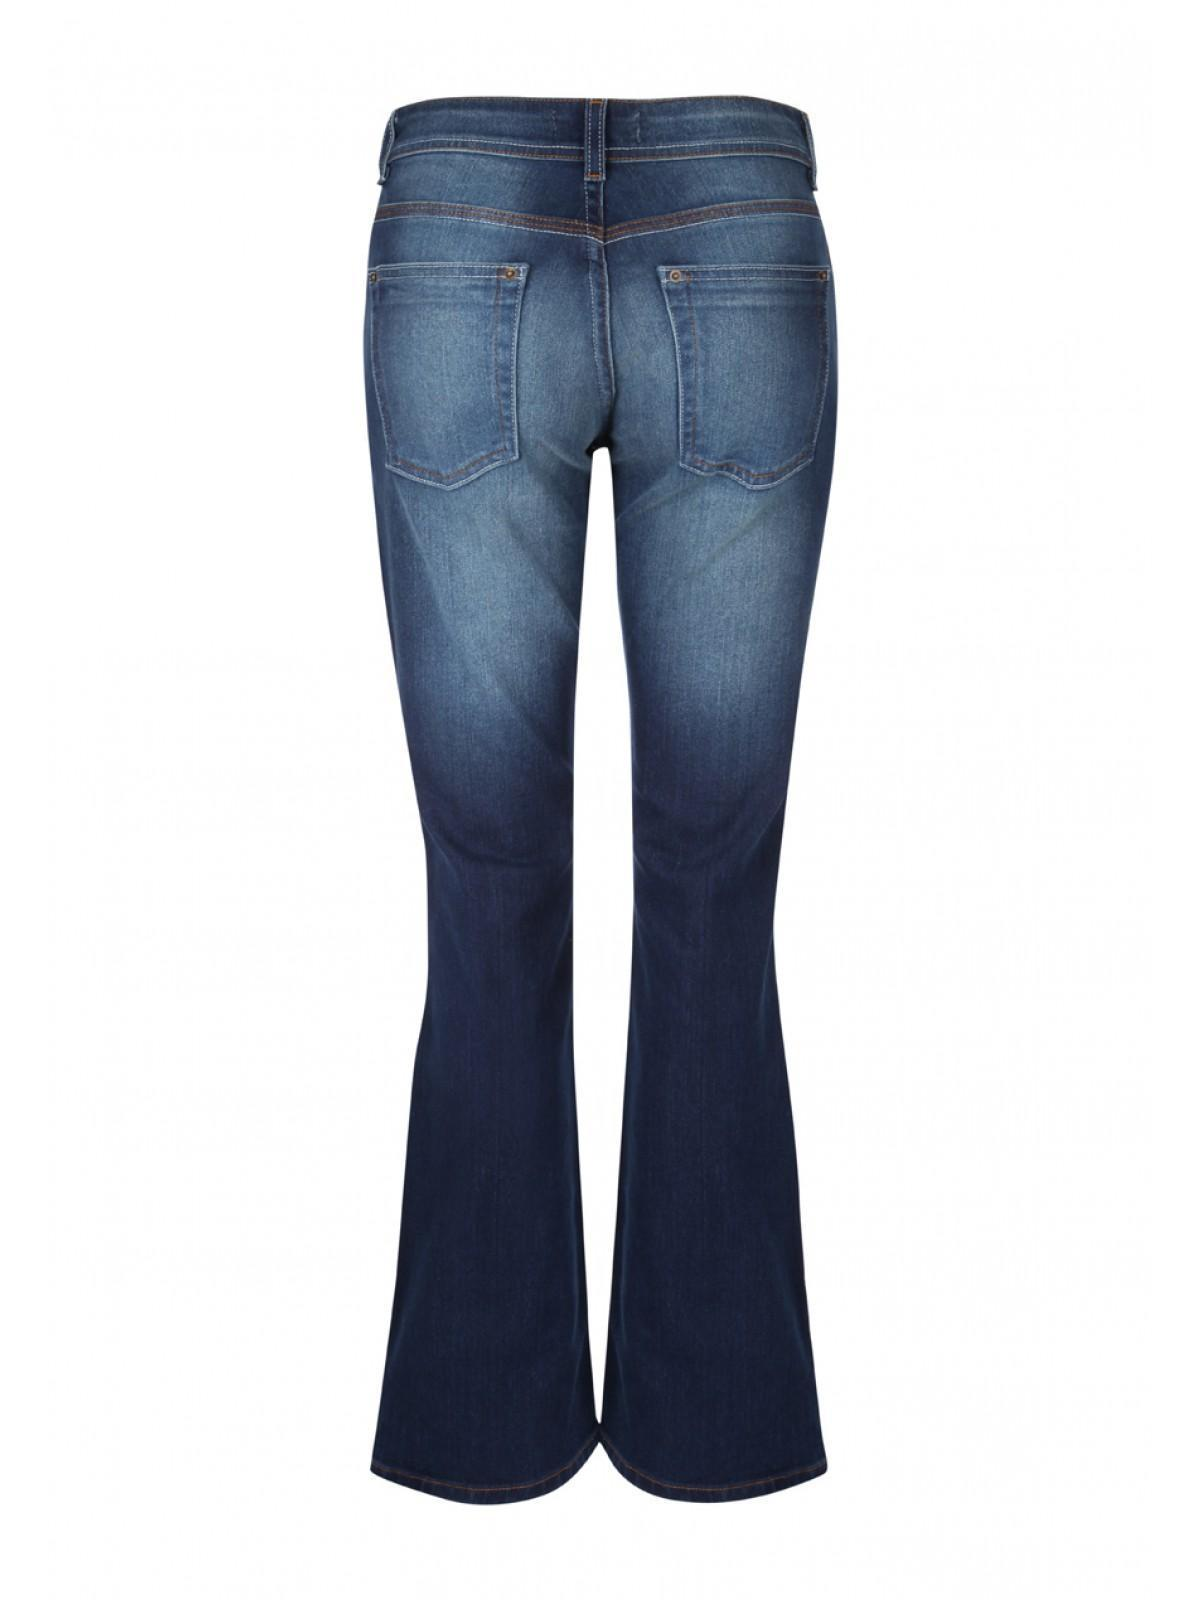 Peacocks ladies bootcut jeans